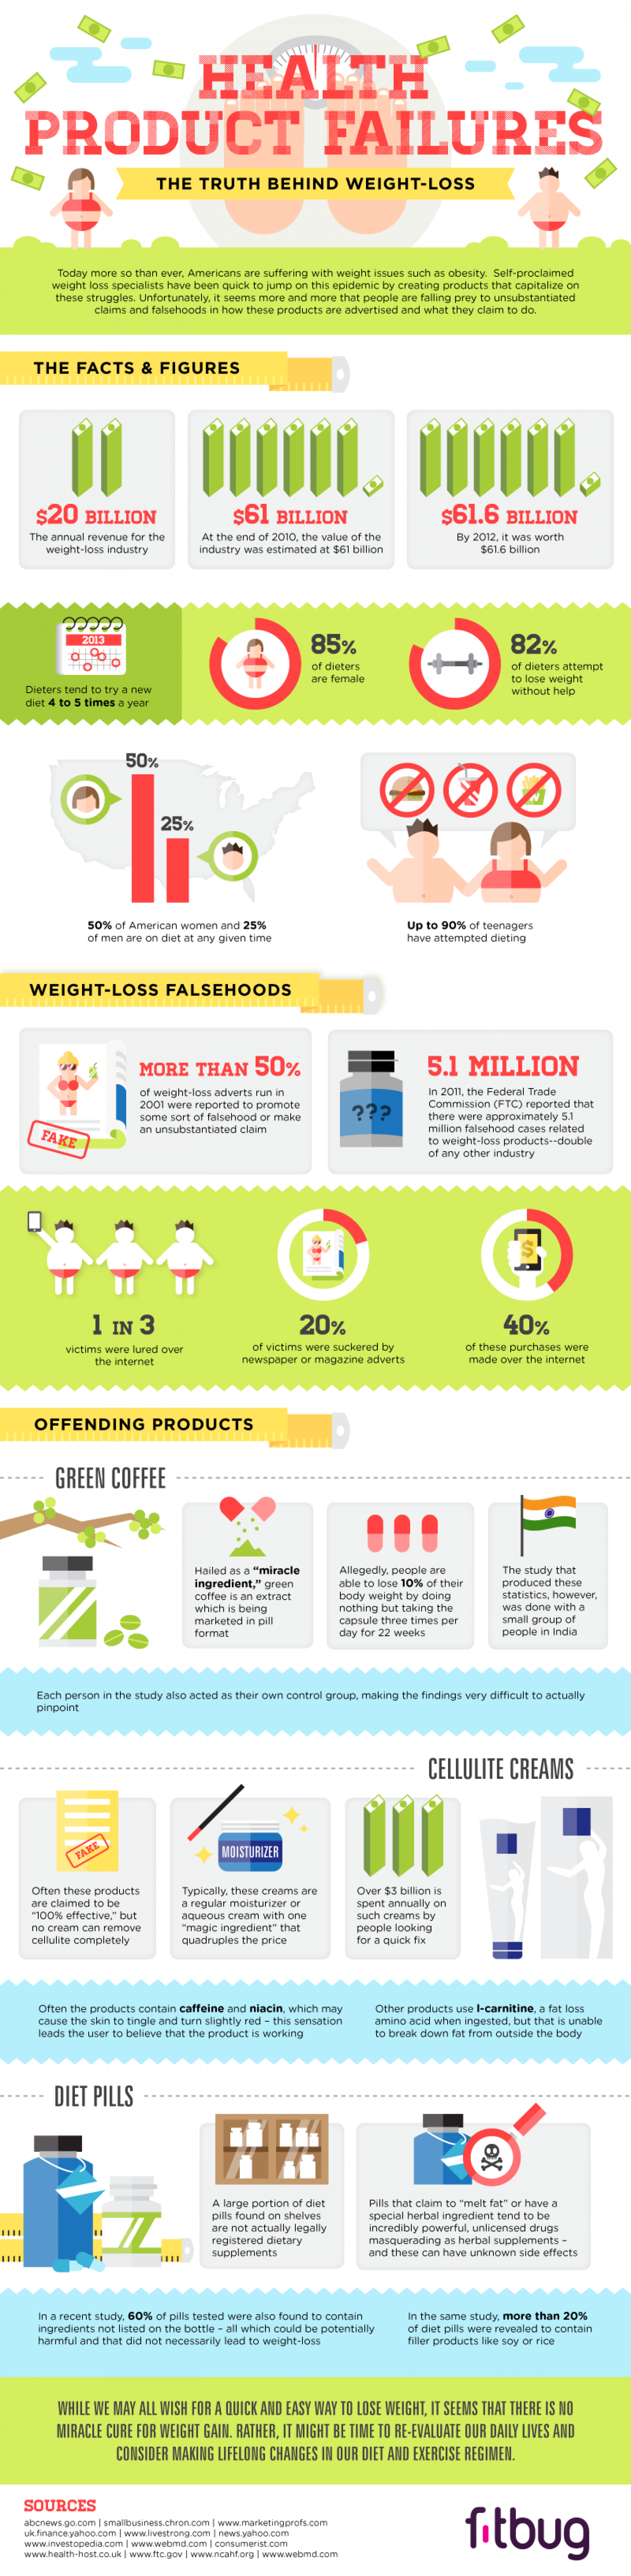 Health Product Failures, The Truth Behind Weight Loss Infographic